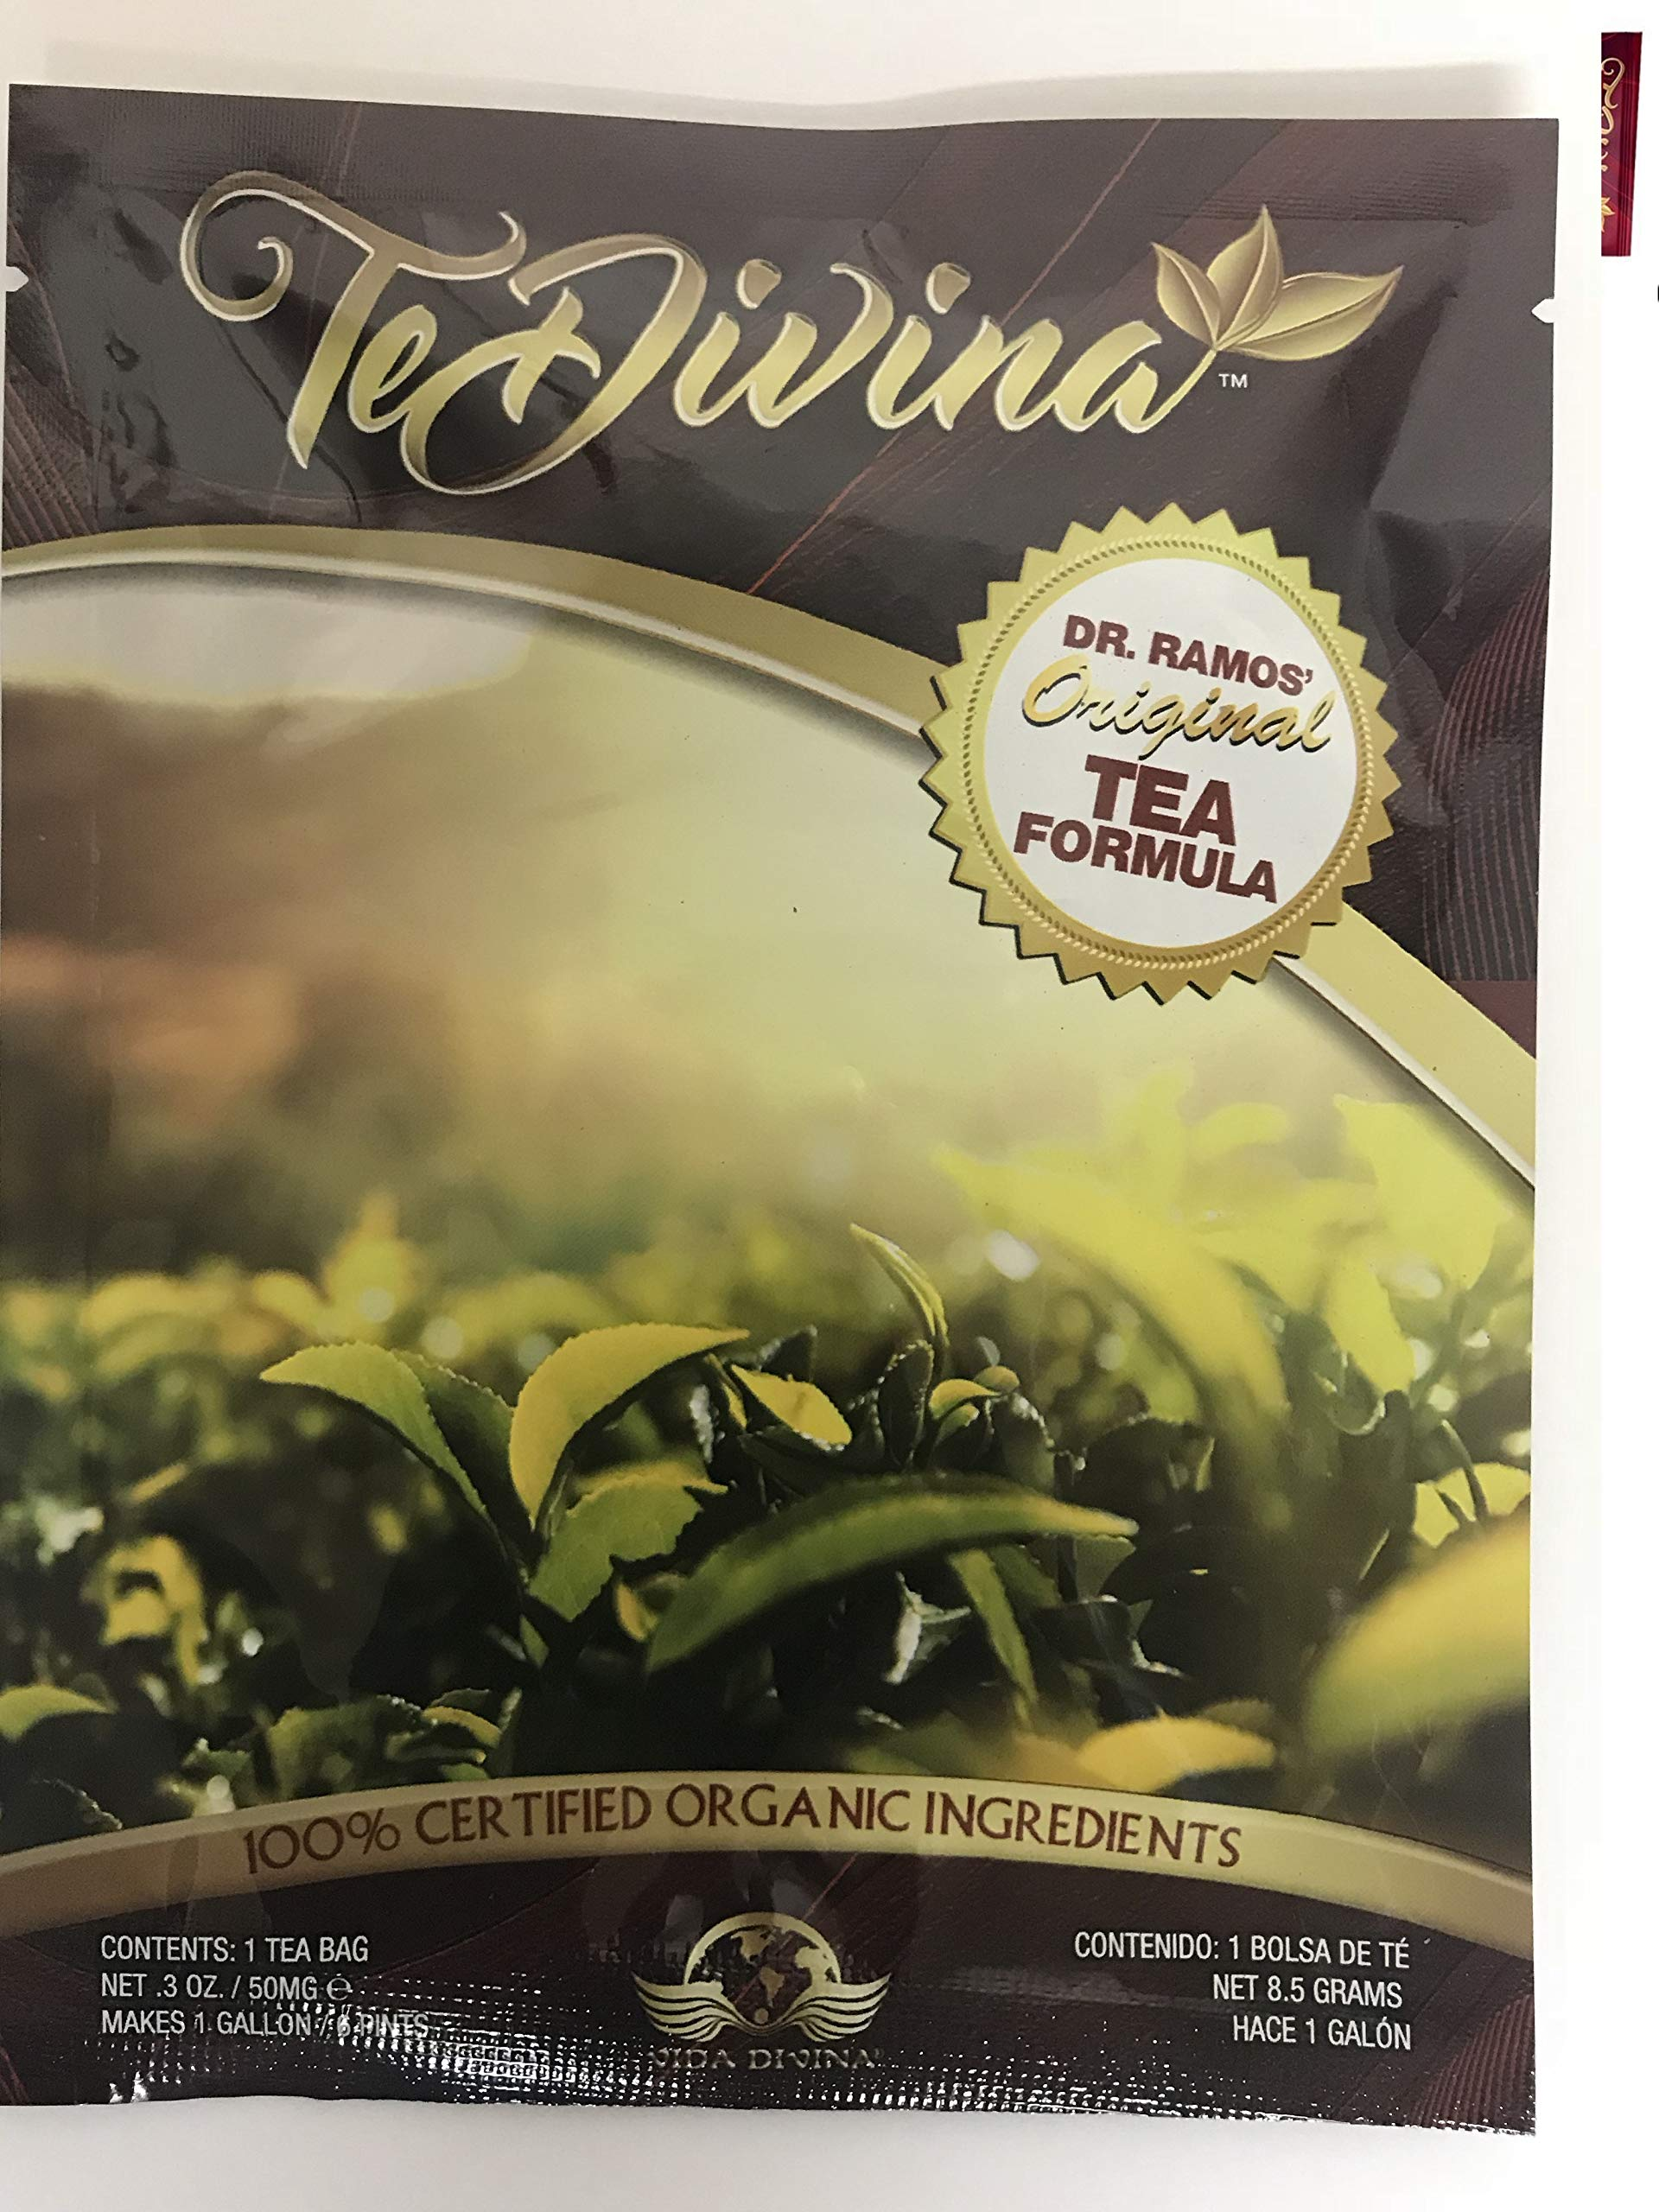 Best deal  Authentic,In stock,4 packsTeDivina One month supply,coming back of the''ORIGINAL''detox tea, way more effective than iaso tea by Te Divina